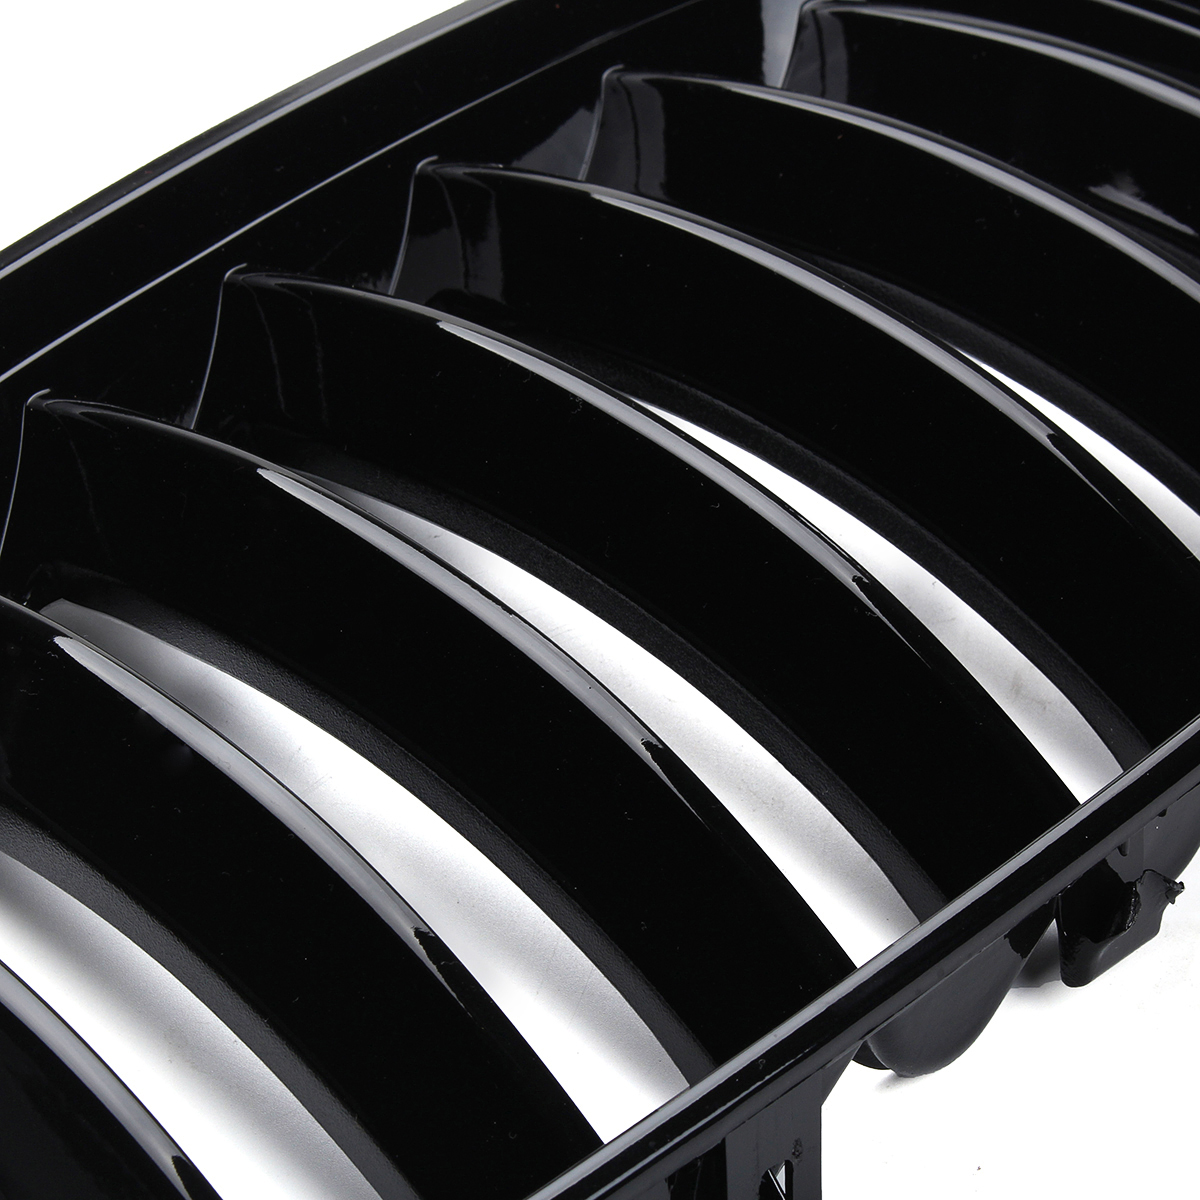 Image 5 - 2Pcs Gloss Black Car Front Kidney Grill Grilles Right & Left for BMW X5 E53 2004 2005 2006 ABS 51137124815 51137124816-in Racing Grills from Automobiles & Motorcycles